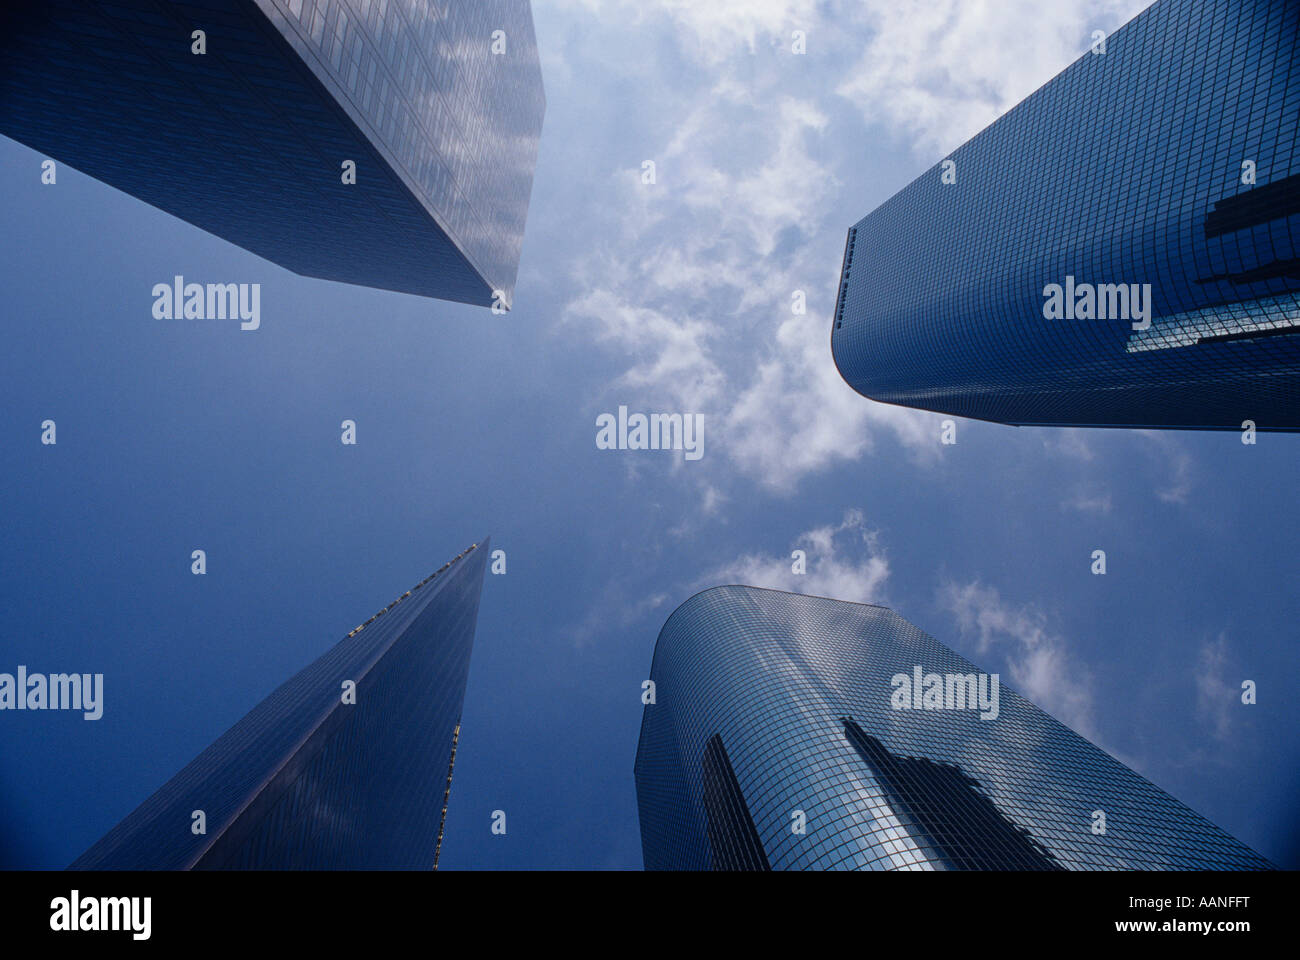 Downtown district with glass office buildings with reflections financial district Los Angeles California USA - Stock Image